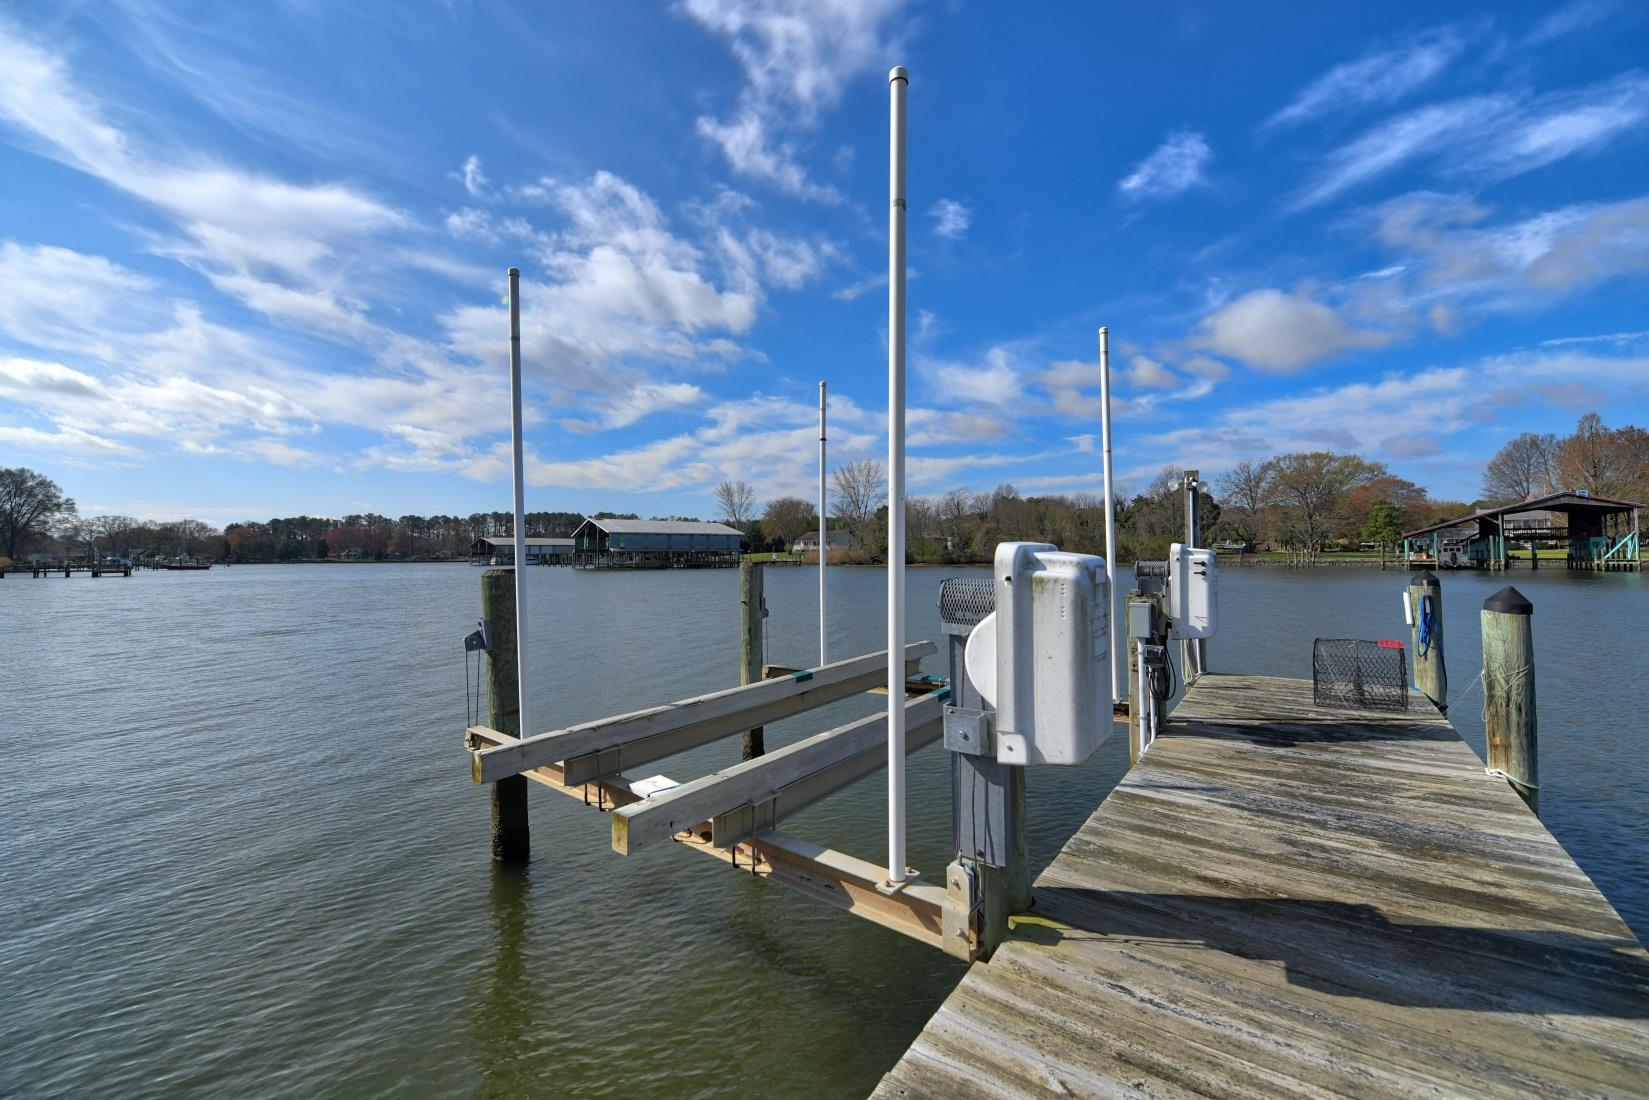 20955 Oakland Hall Road / Avenue MD / St Marys County Waterfront - Pier with Boat Lift on St Patricks Creek